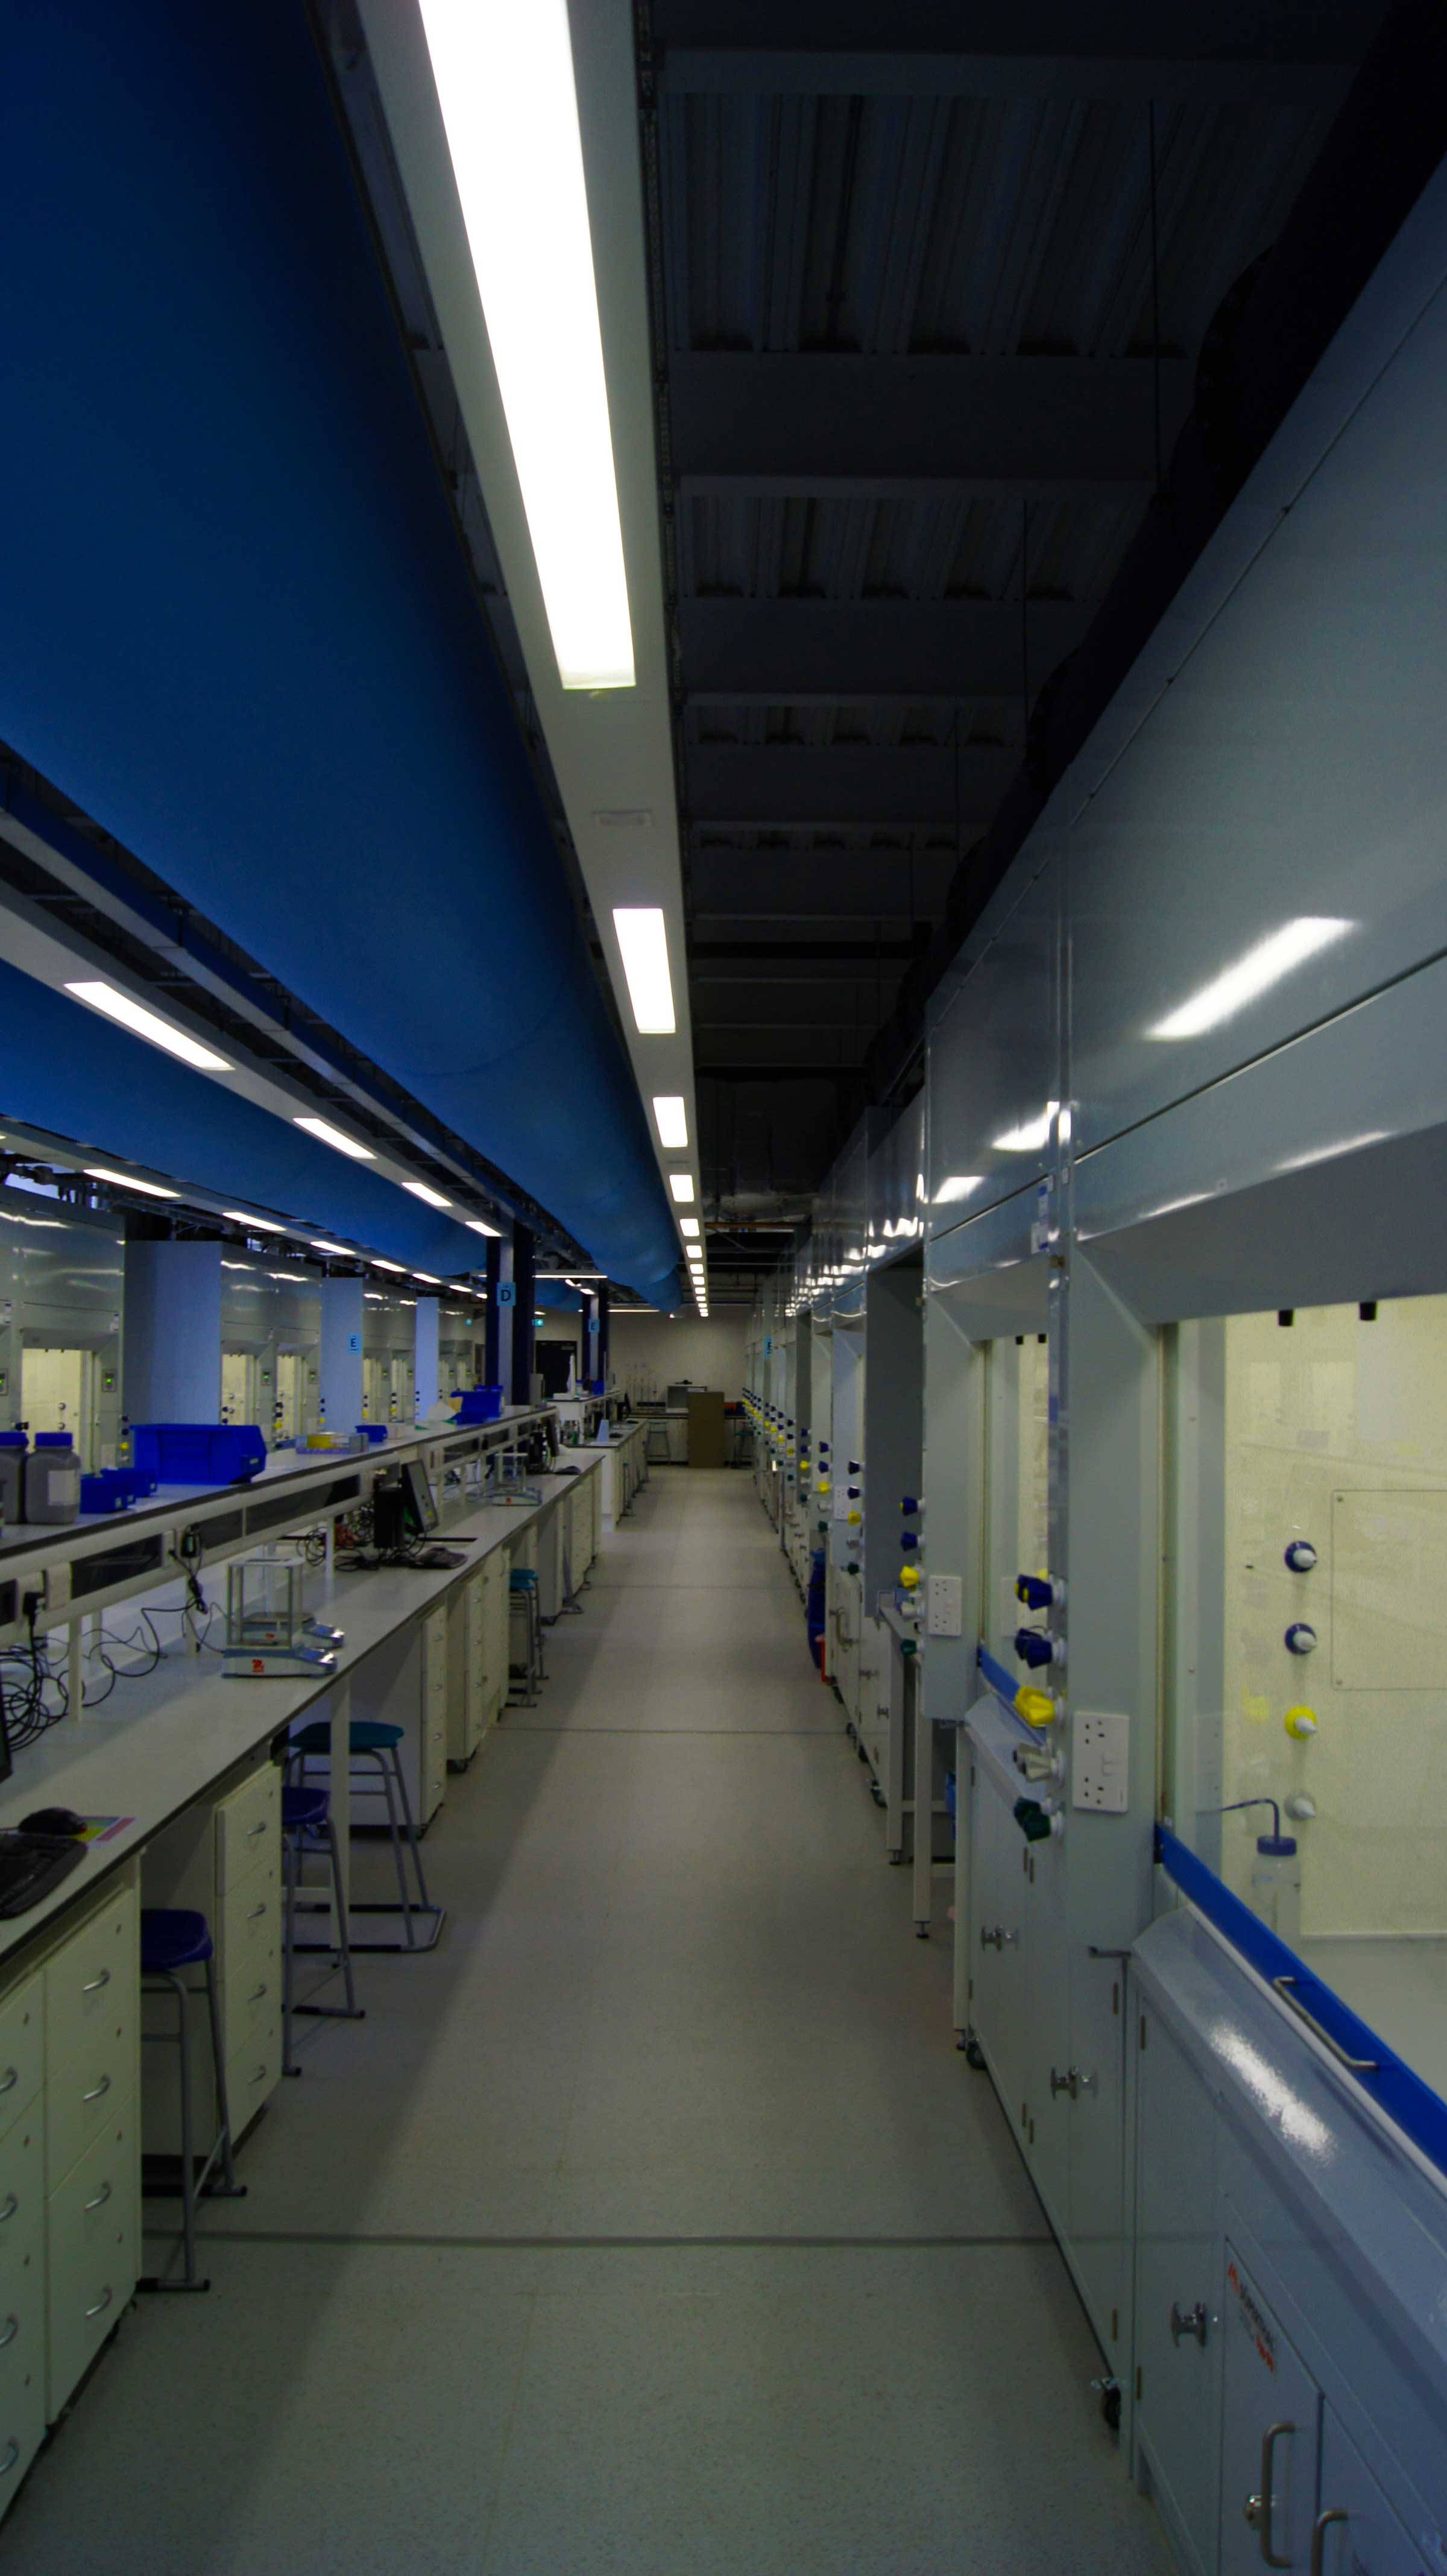 laboratory ventilation with ventilation ducts